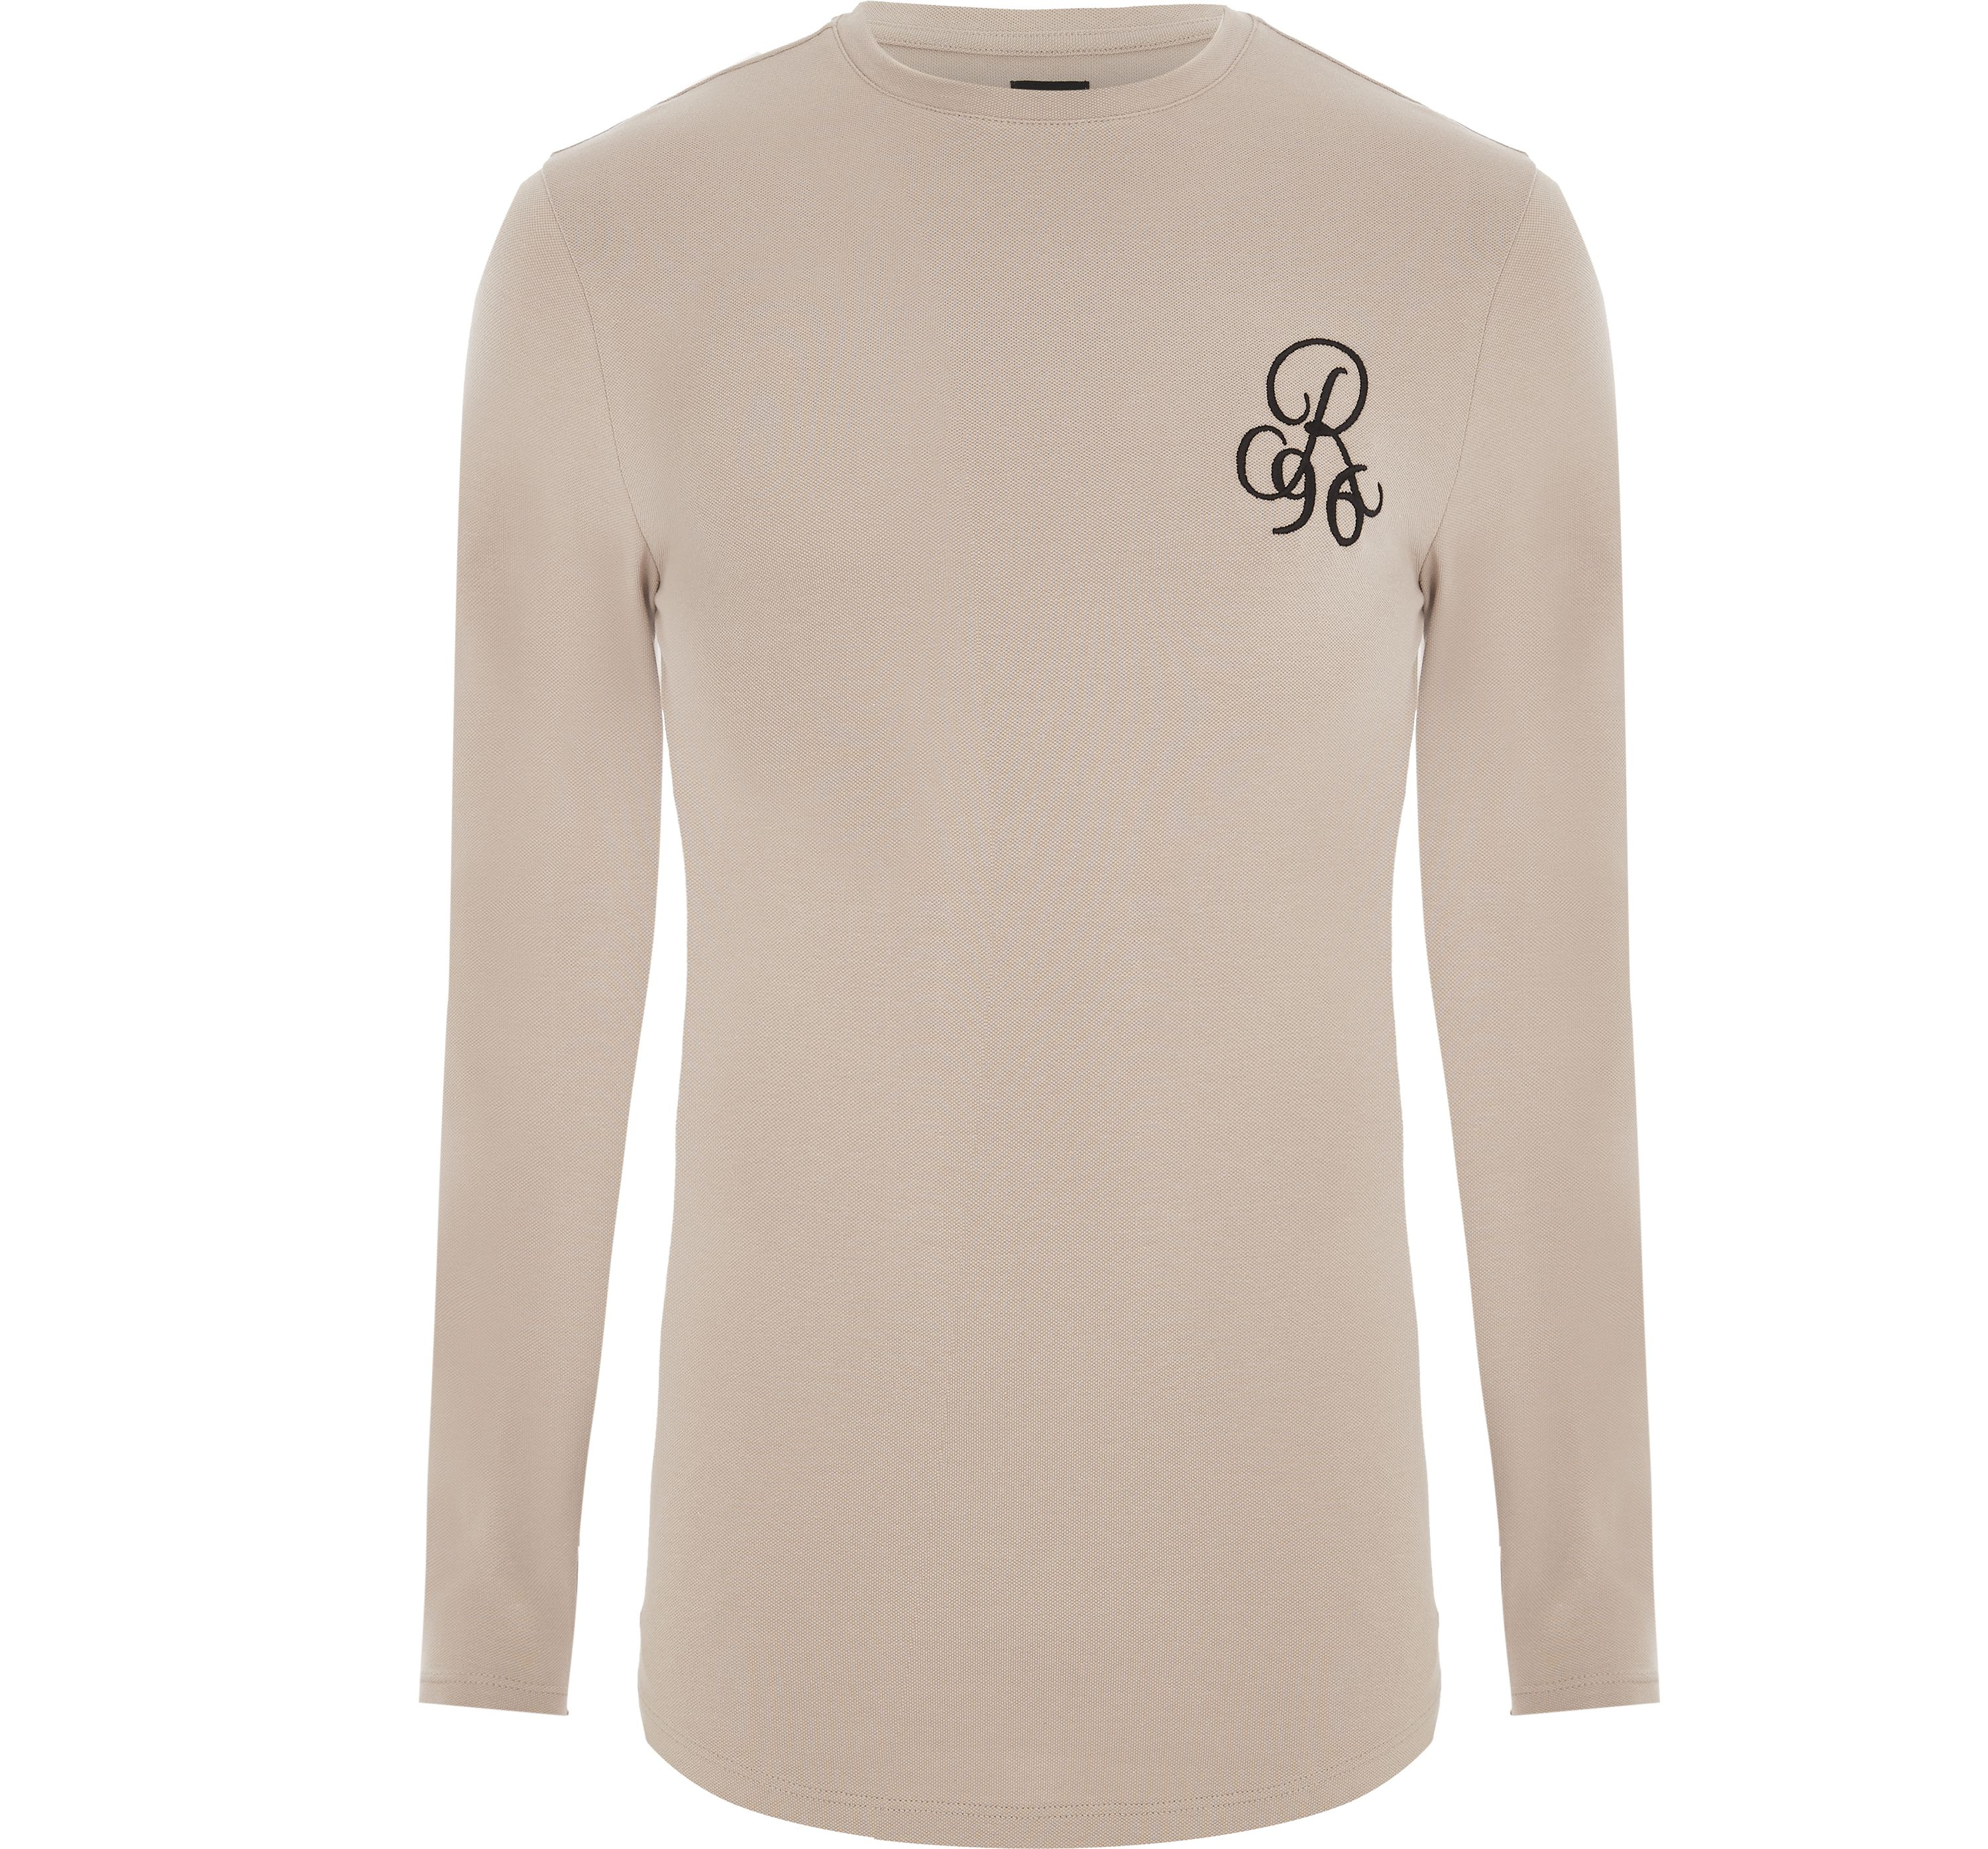 River Island Mens Beige muscle fit 'R96' long sleeve T-shirt